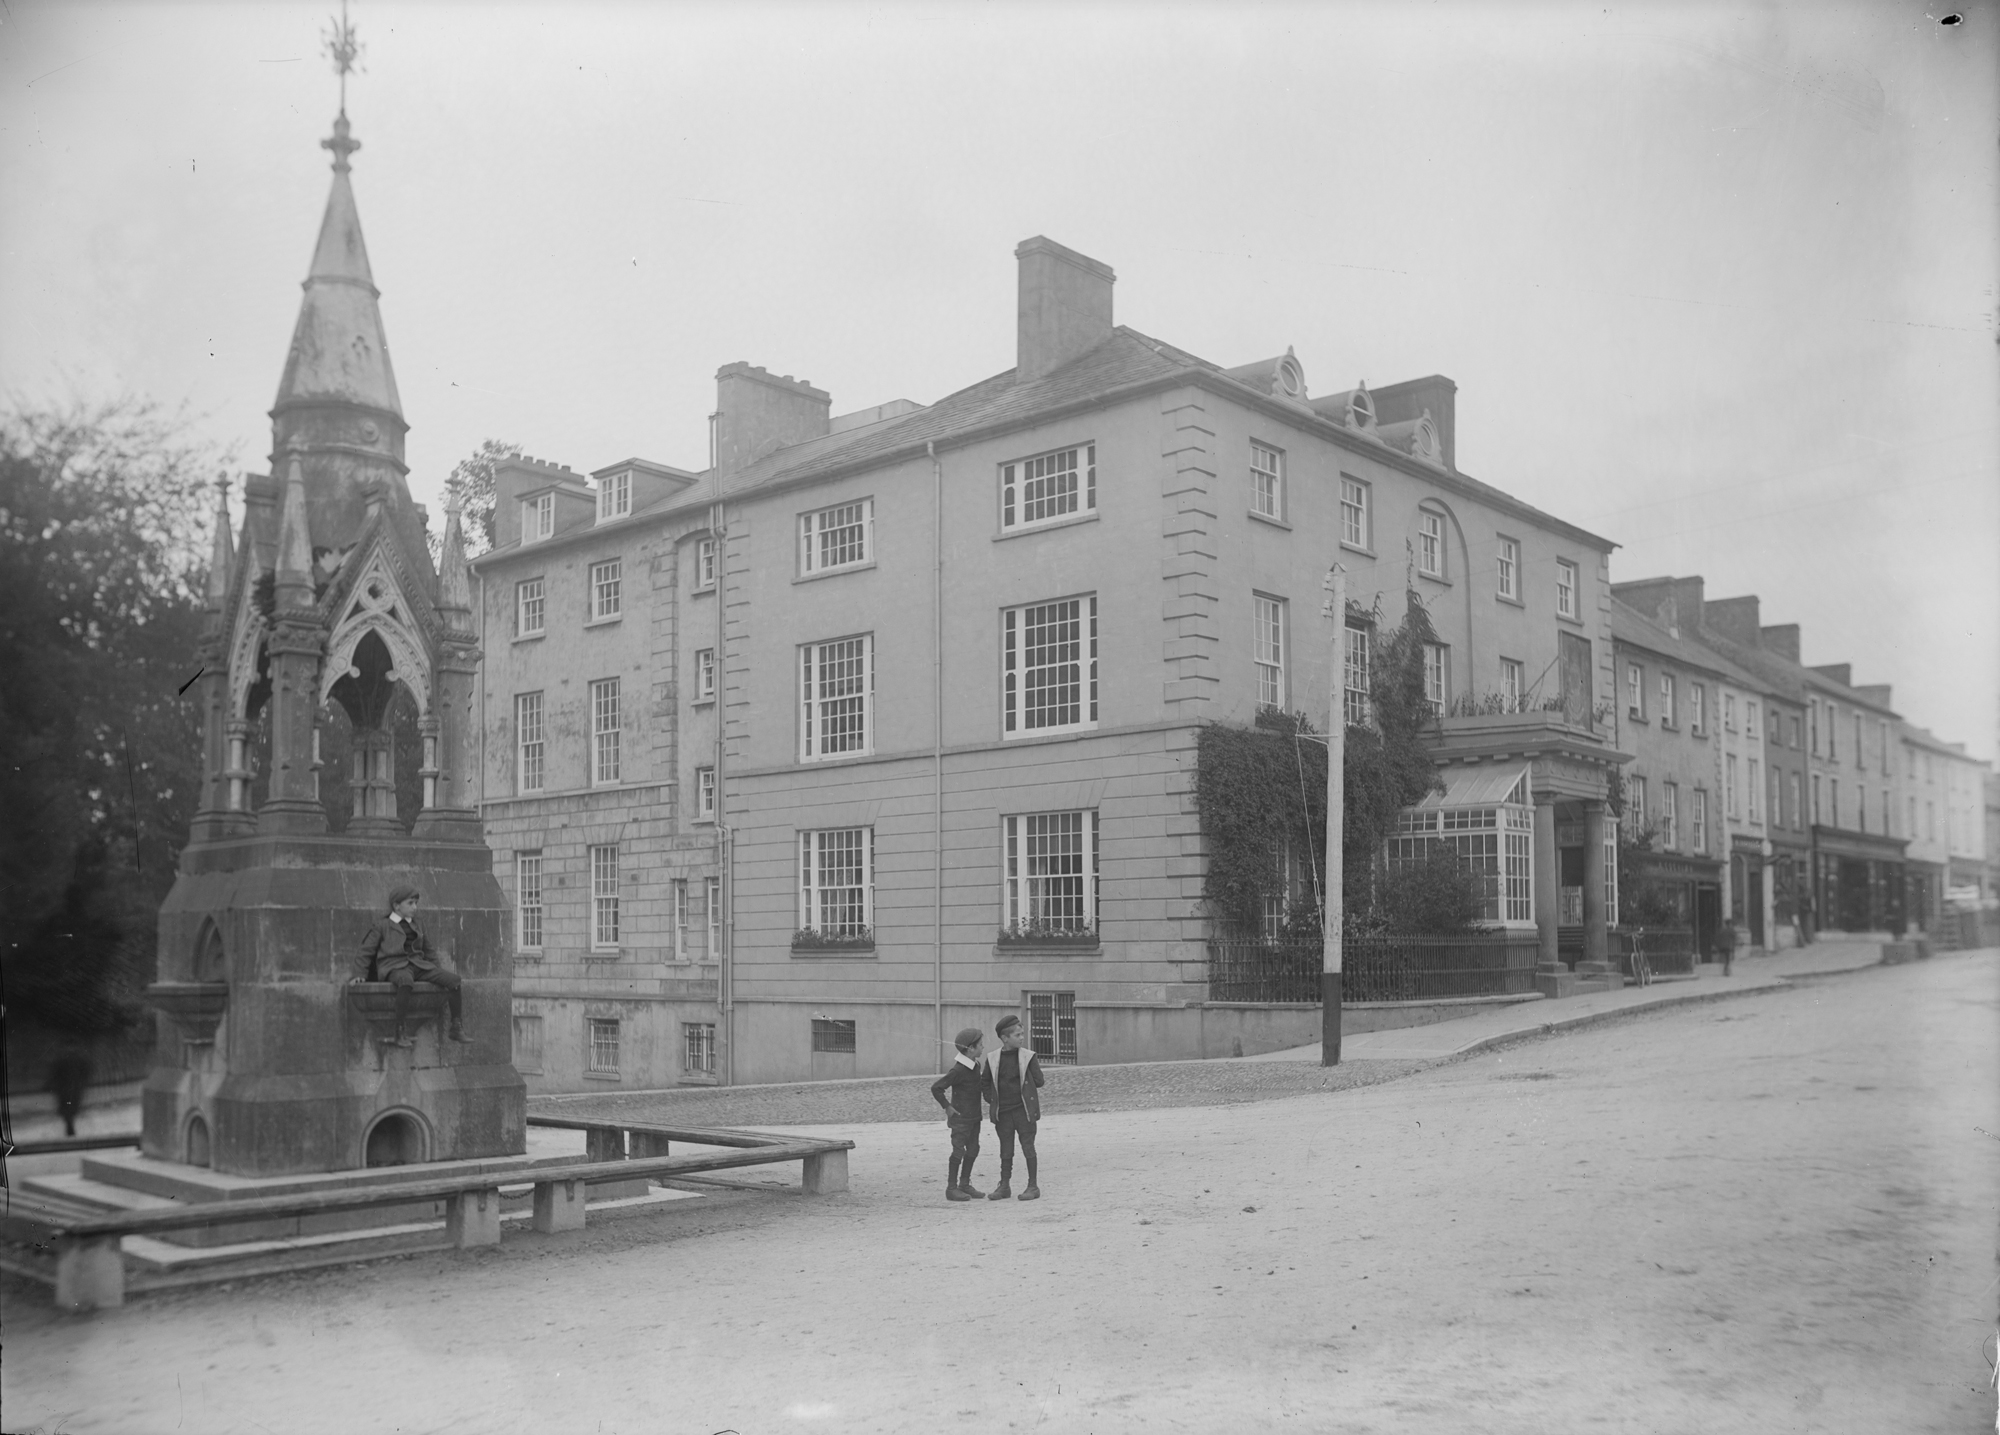 Devonshire Arms Hotel, Lismore, Co. Waterford